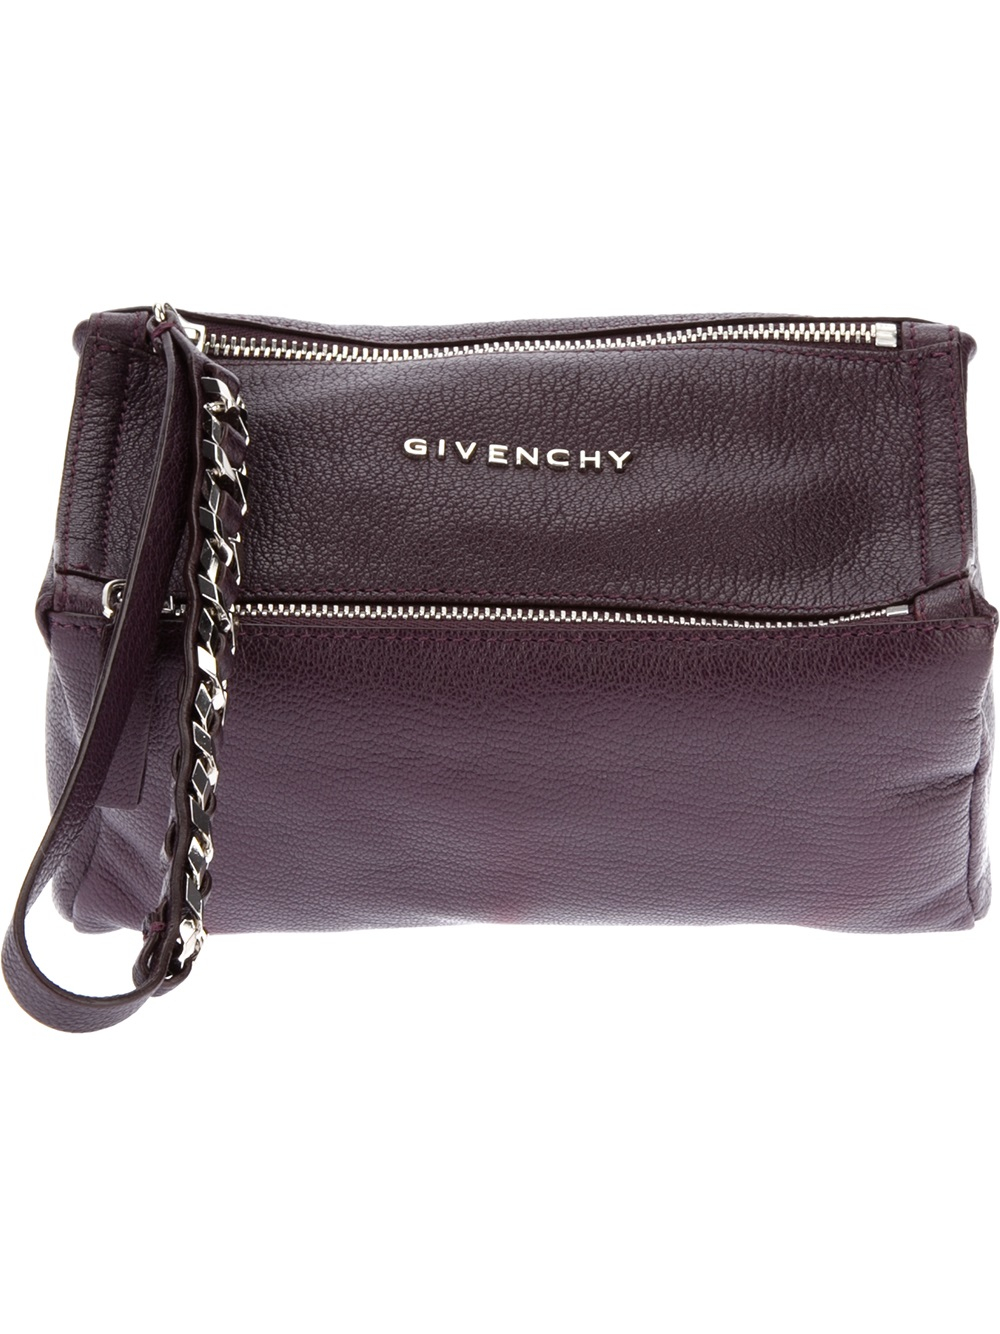 Givenchy Pandora Clutch In Purple